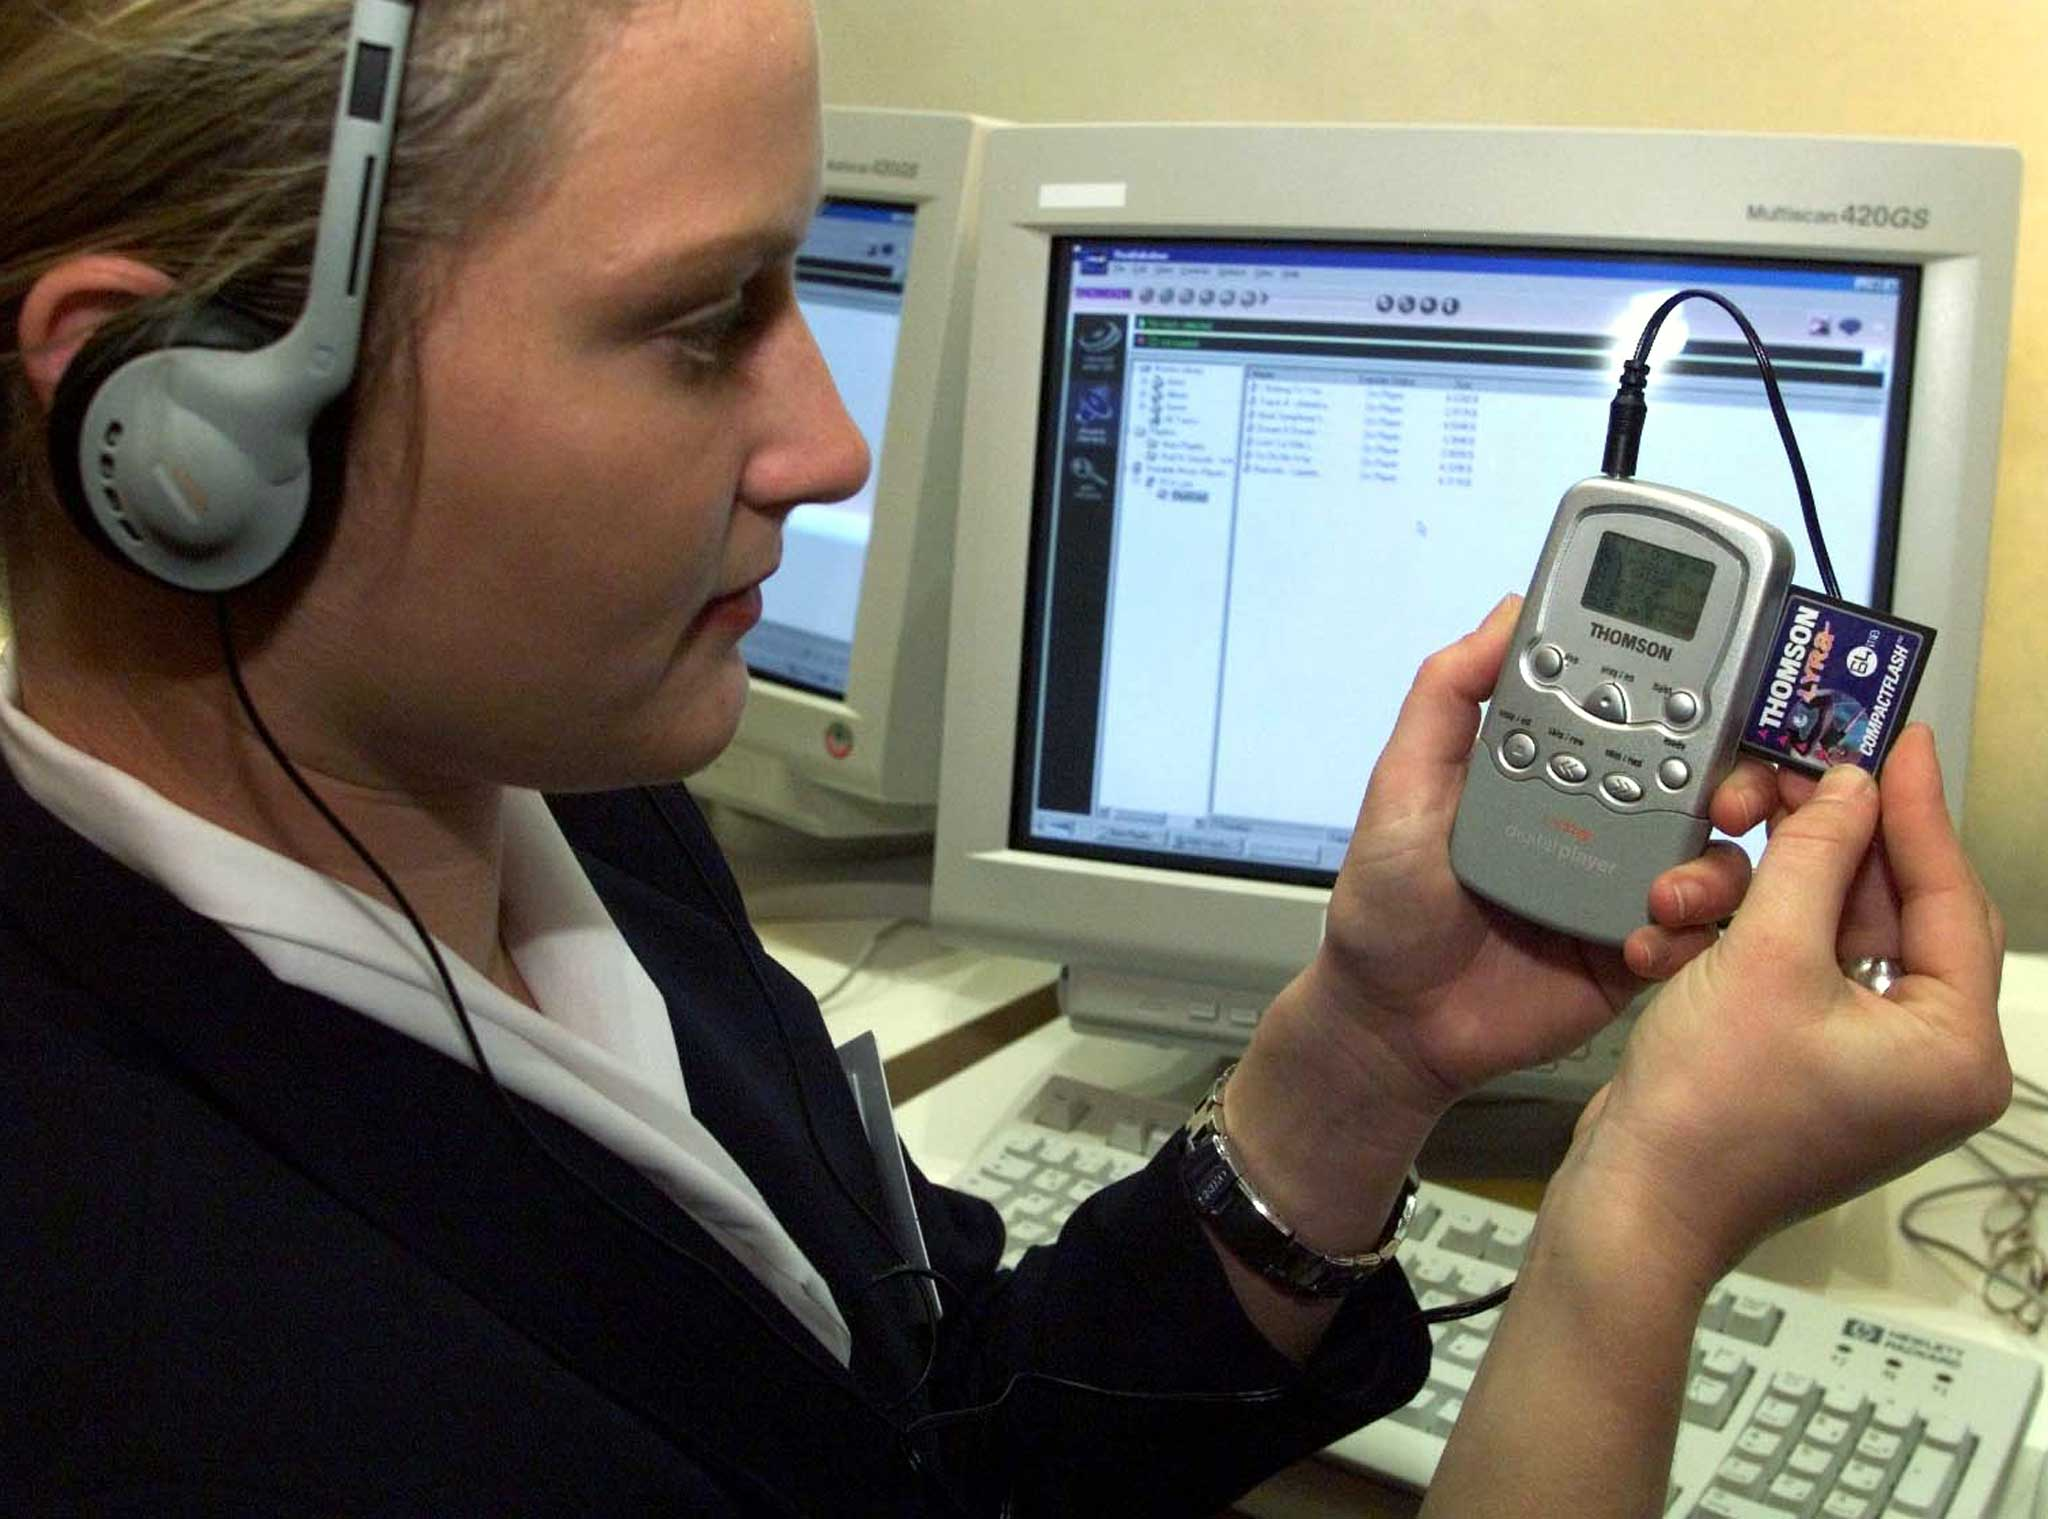 An employee listens to music with a Thomson Lyra MP3 music player. Picture taken in 1999. Photo by Reuters